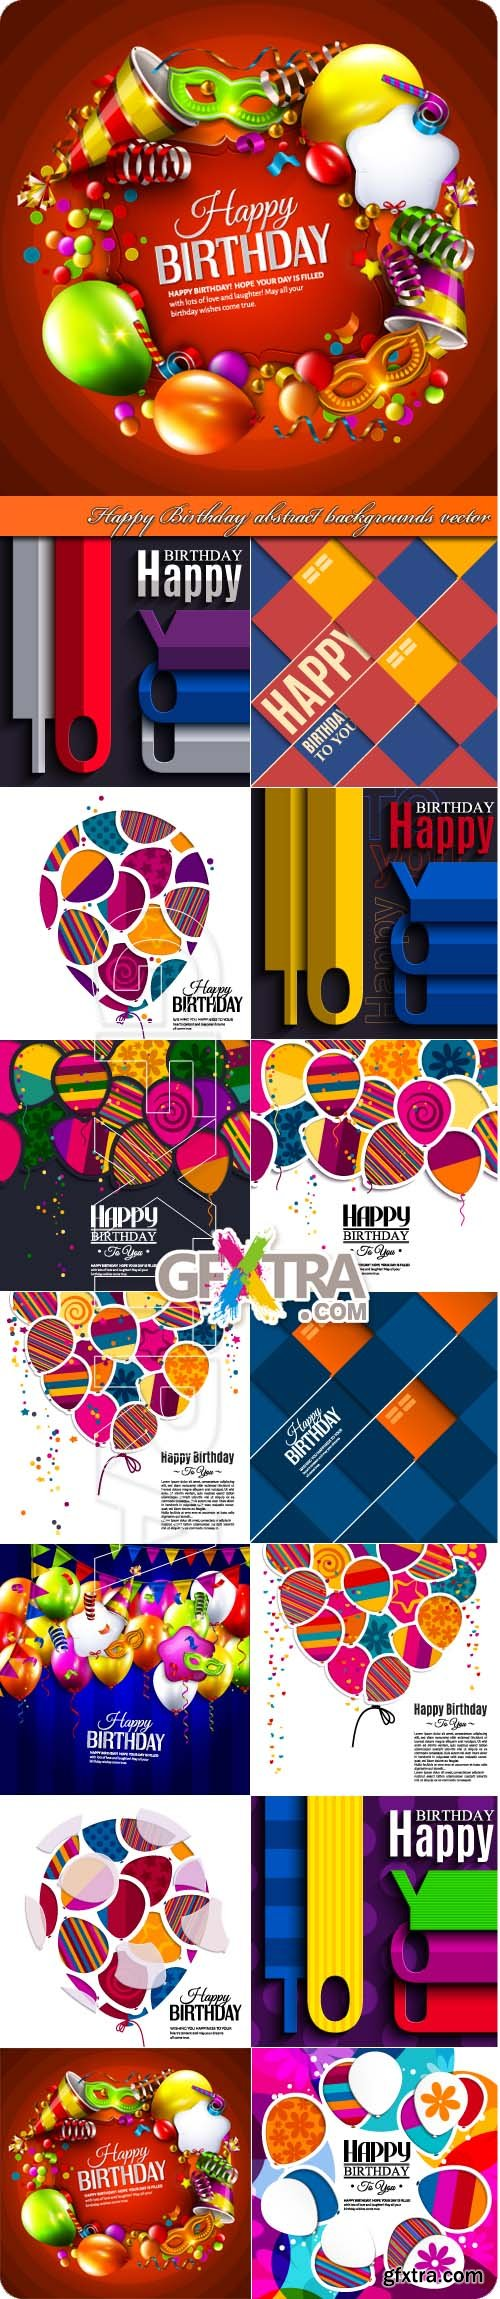 Happy Birthday abstract backgrounds vector